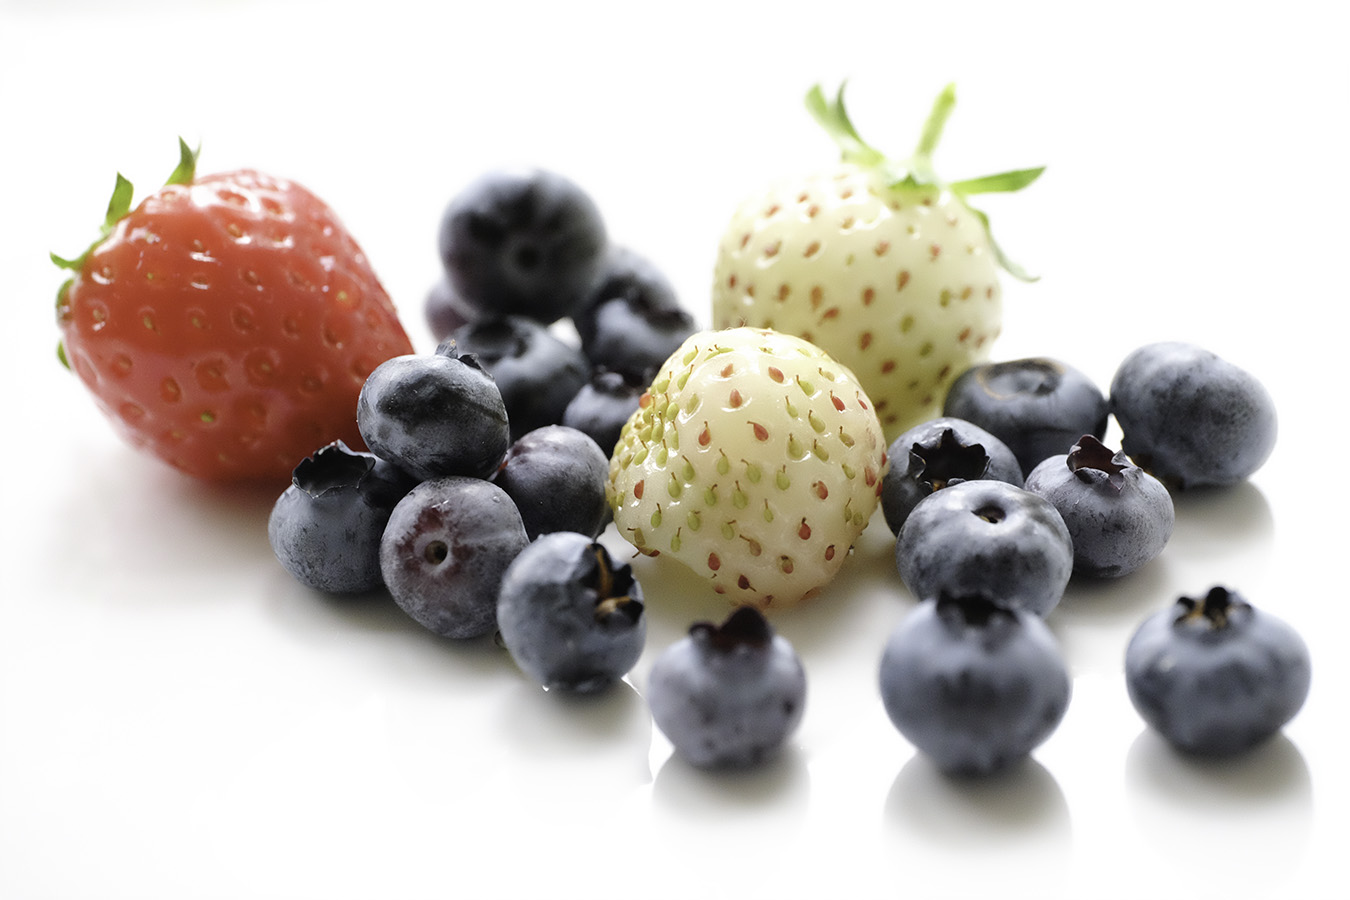 Photo: London food photography, by photographer and retoucher margaret yescombe, fruity berries, white background